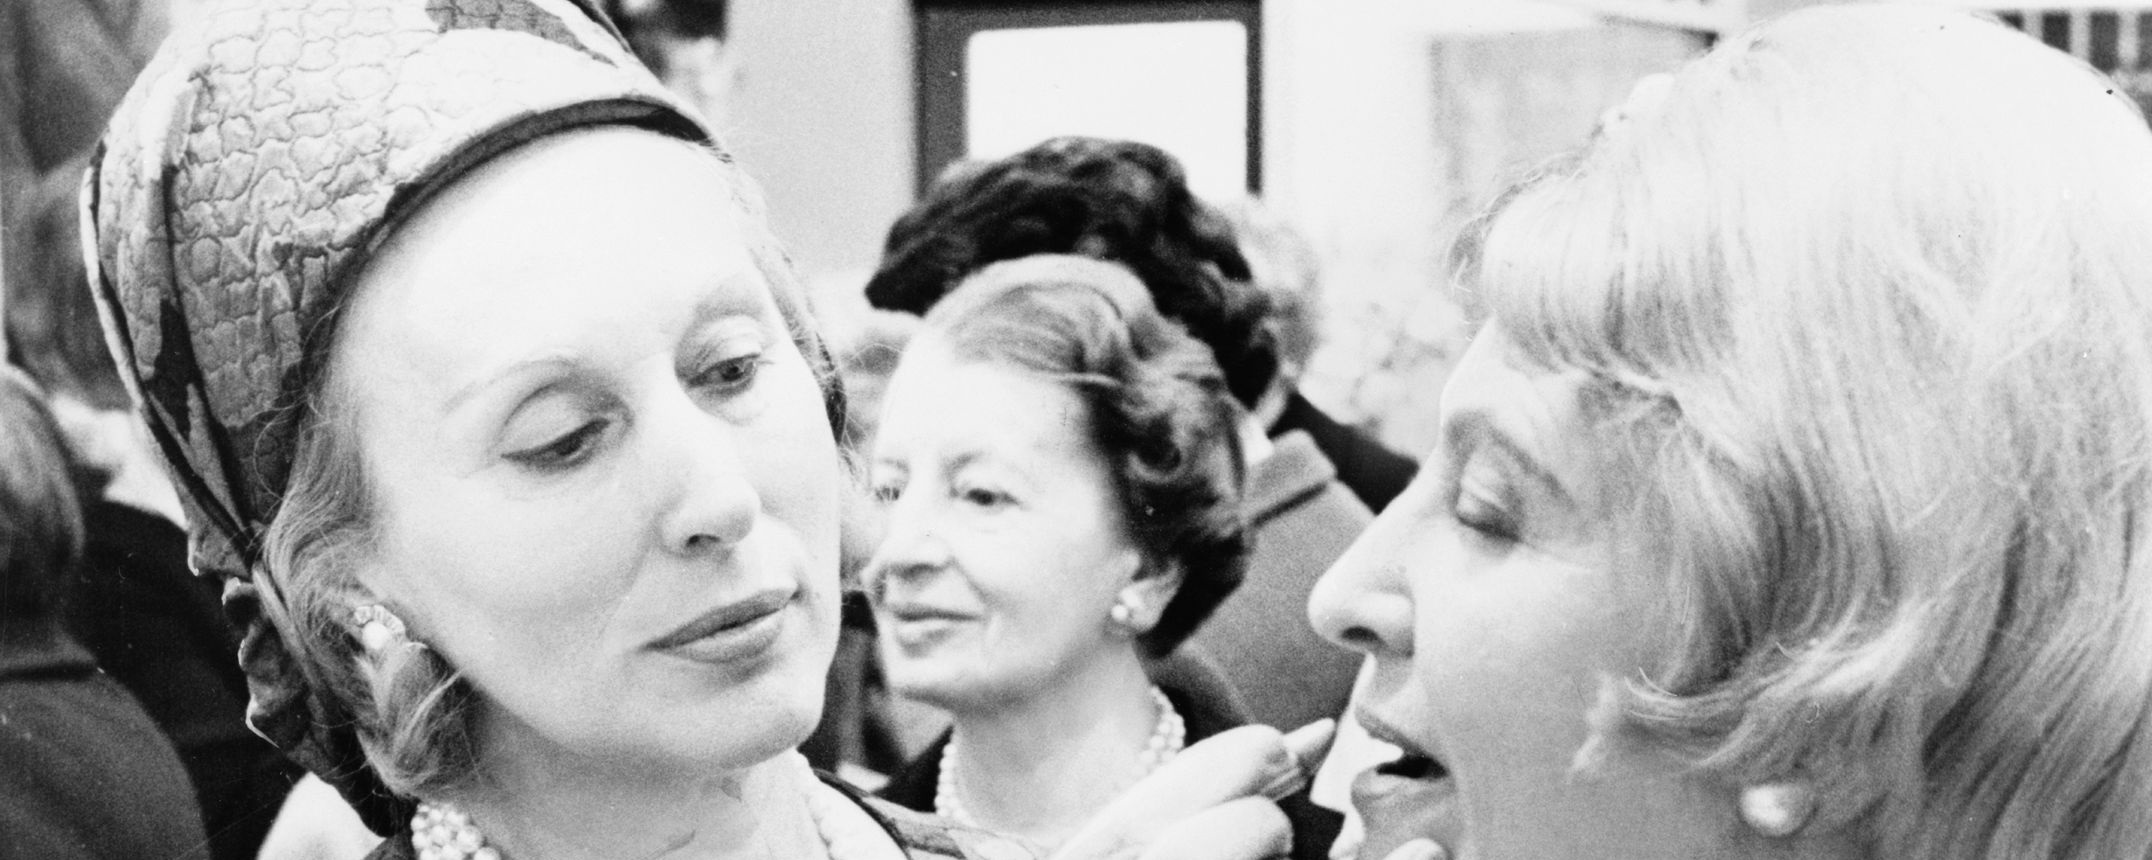 Estee Lauder applying makeup on a customer, 1966.